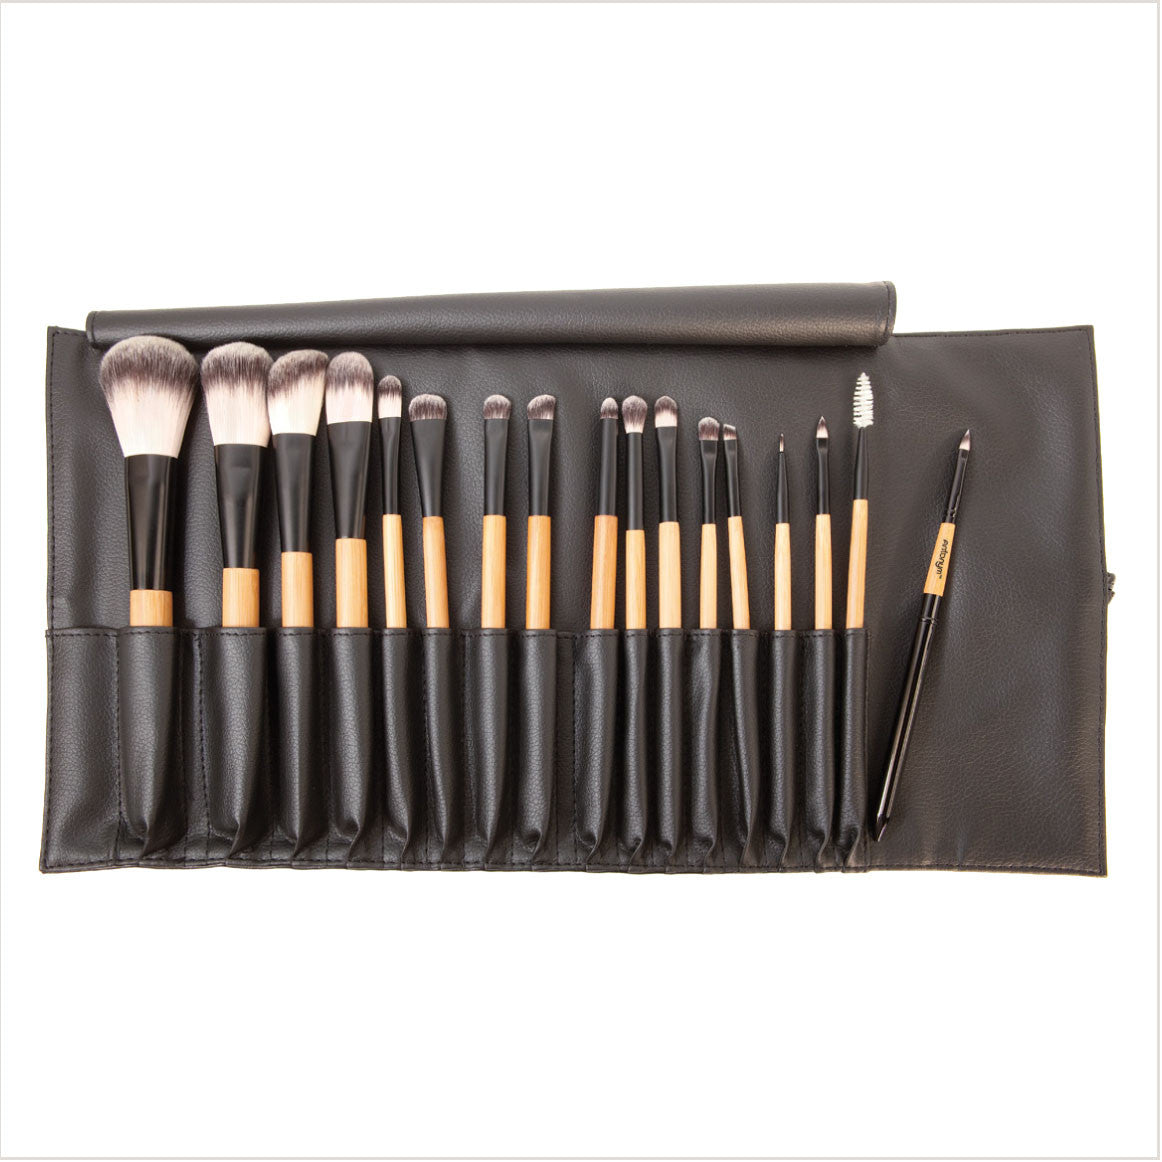 The 18 Brush Set - Antonym Cosmetics